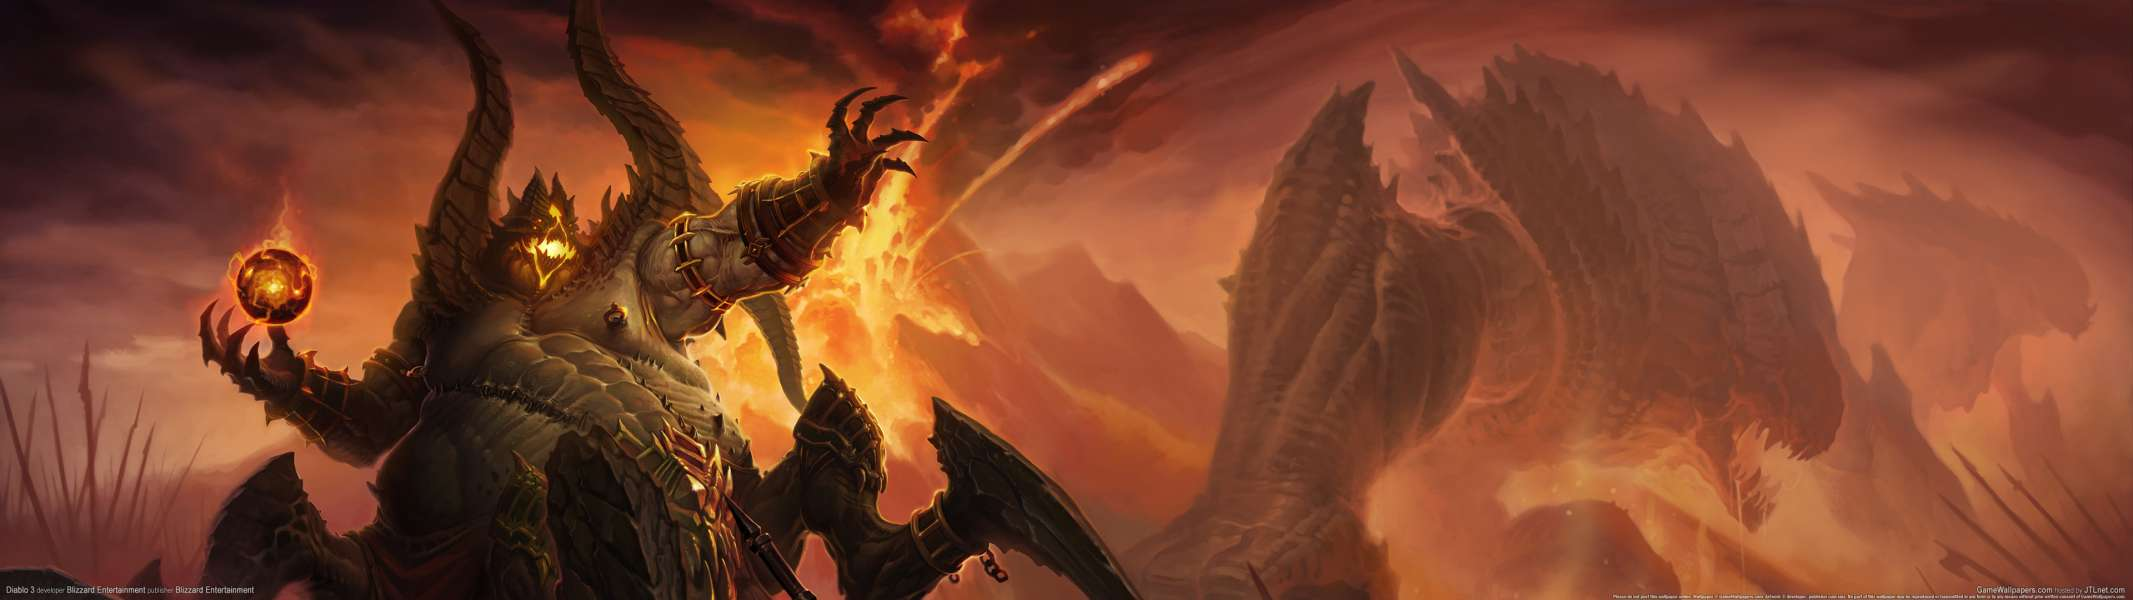 Diablo 3 dual screen wallpaper or background